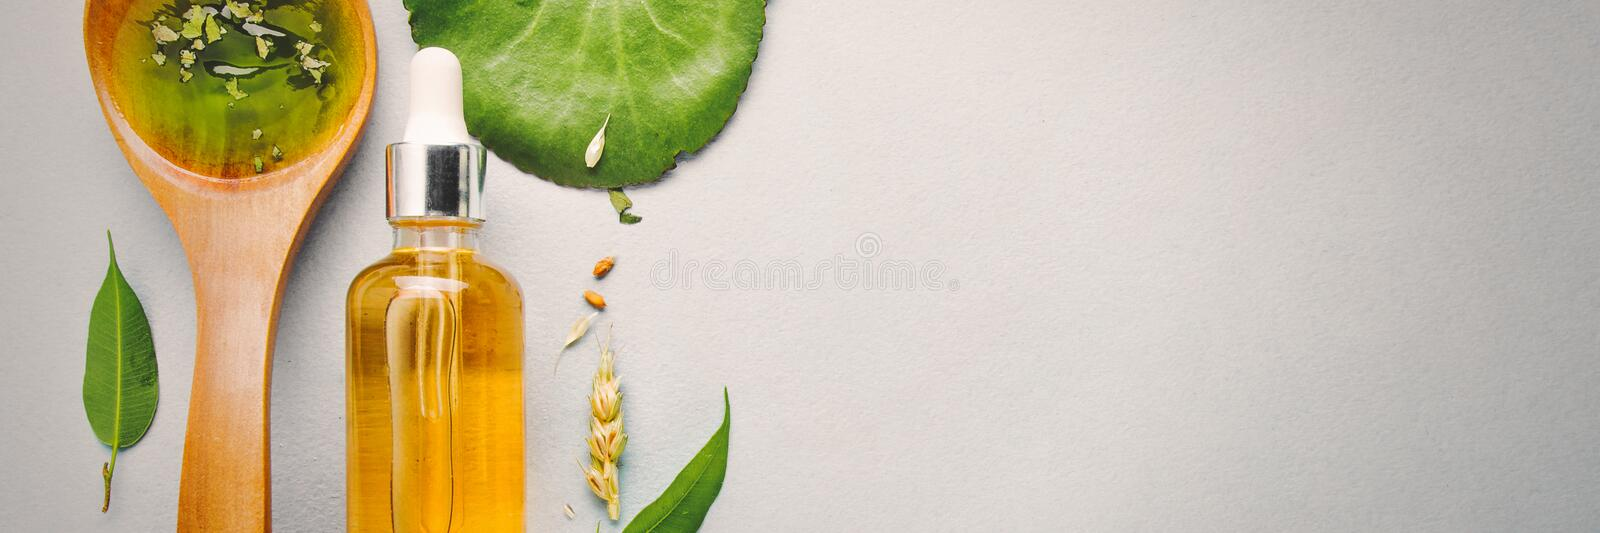 Homeopathic oils, dietary supplements for intestinal health, skin care. stock images